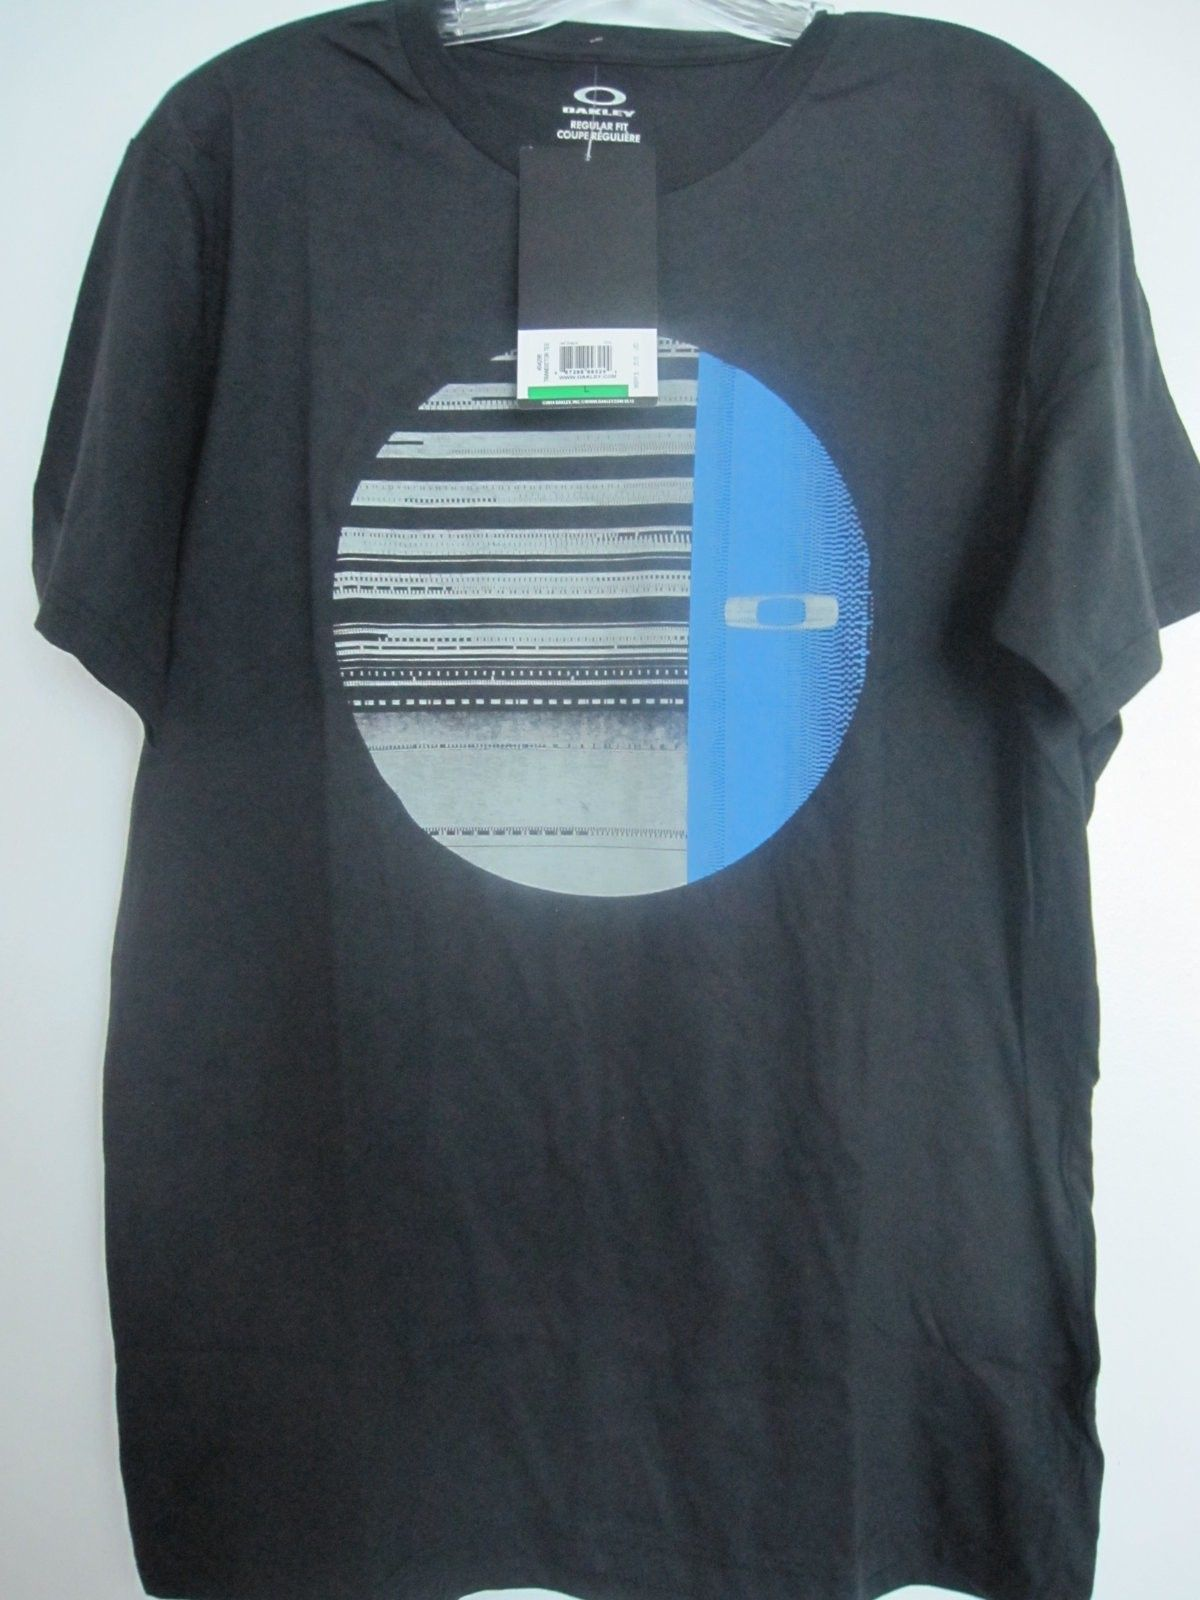 New Oakley clothing items size L - pic 5.JPG